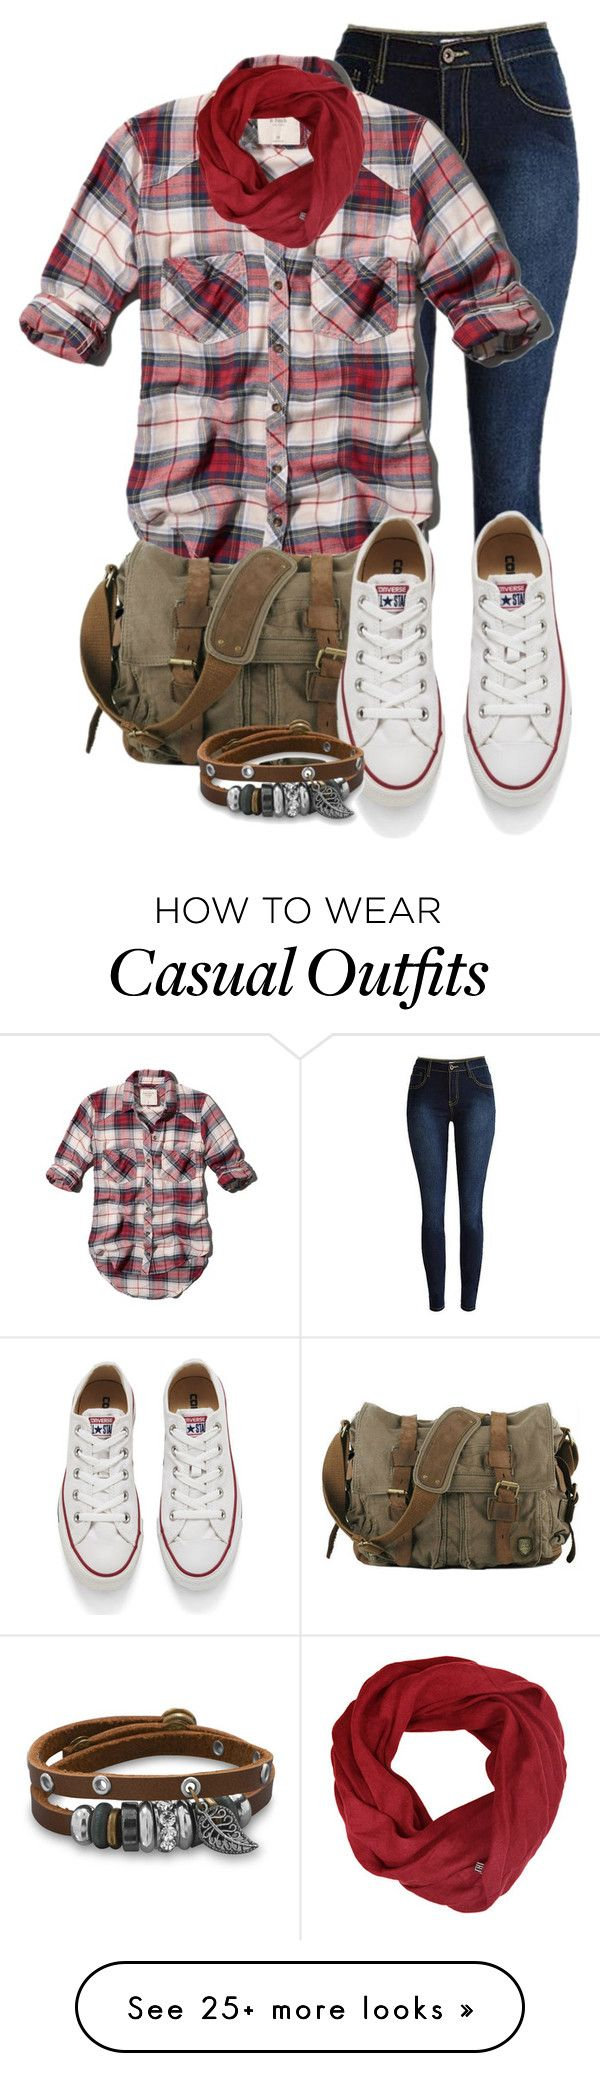 """casual"" by alice-fortuna on Polyvore featuring Abercrombie & Fitch, Converse, women's clothing, women's fashion, women, female, woman, misses and juniors"